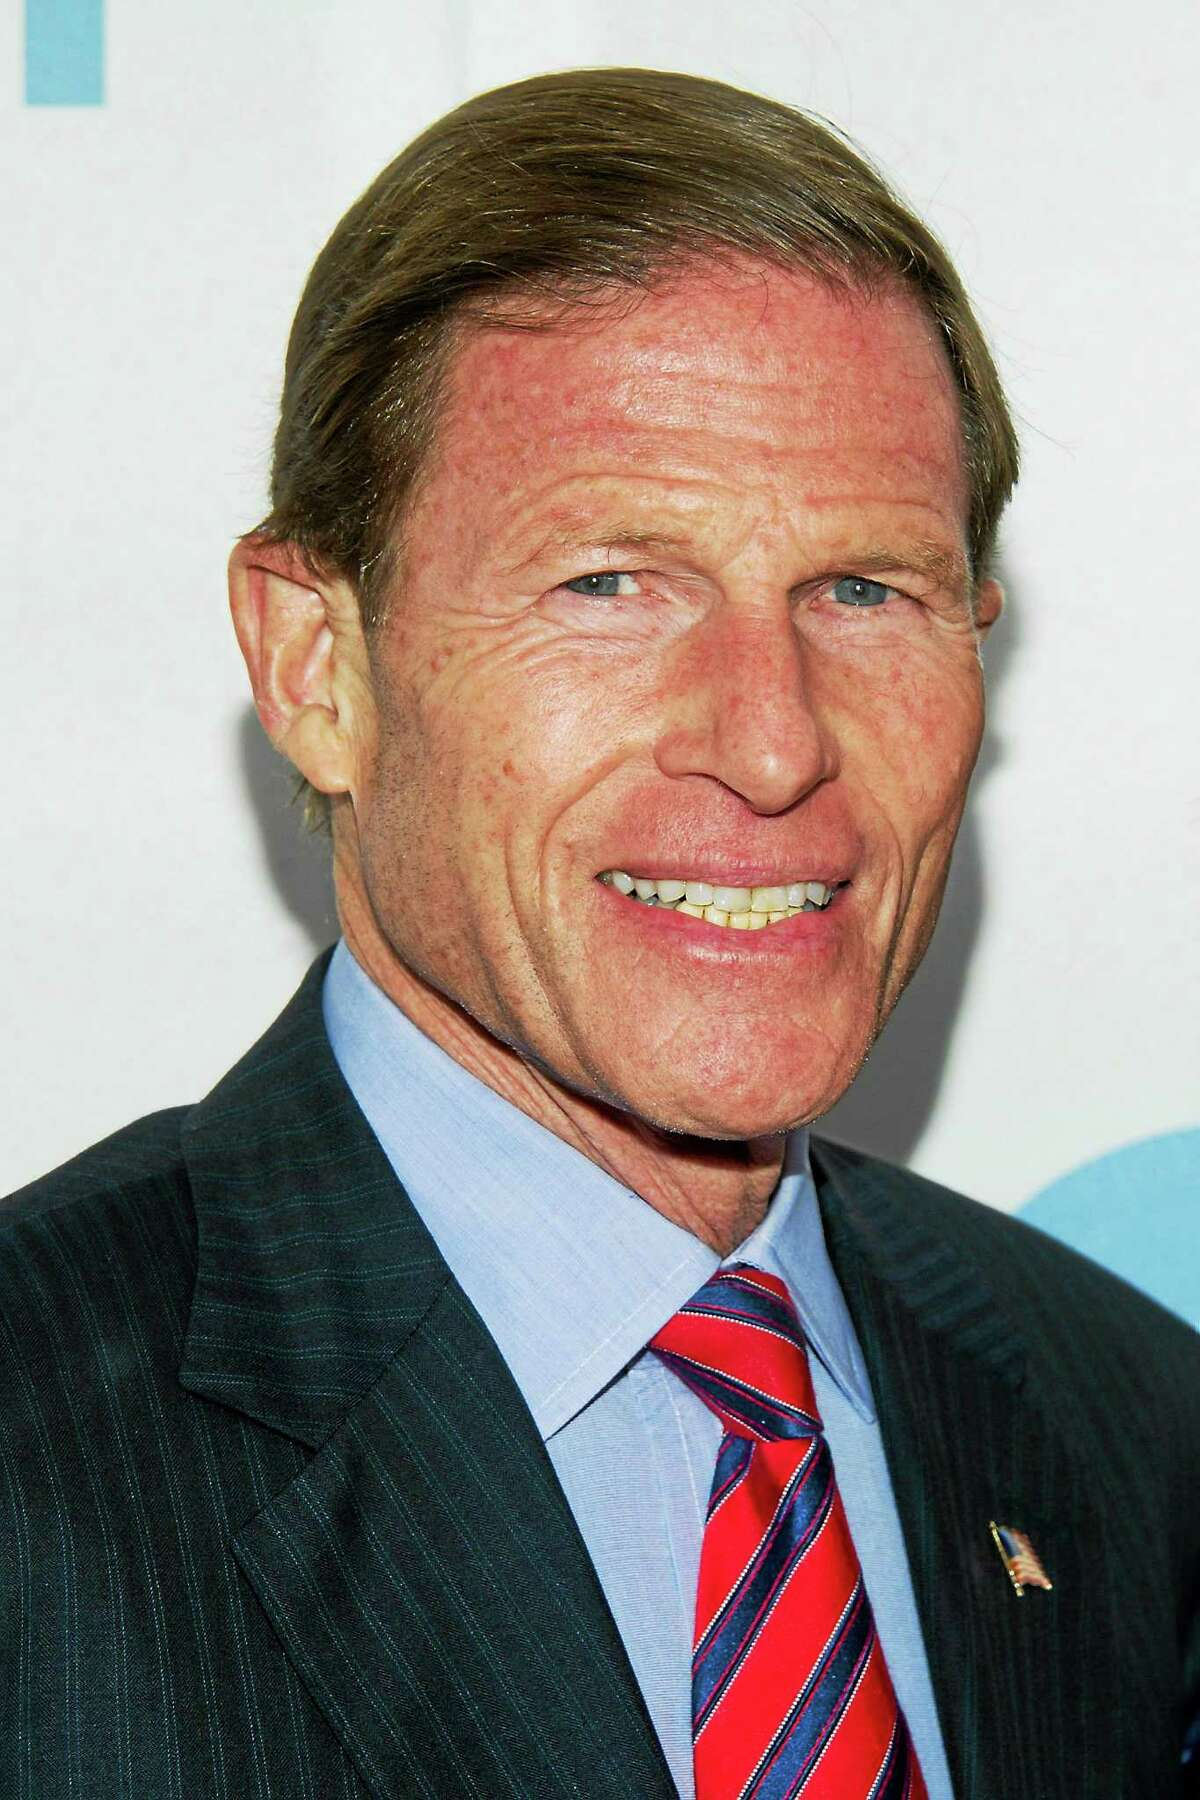 Senator Richard Blumenthal arrives at the 6th Annual Stand Up For Heroes benefit concert for injured service members and veterans on Nov. 8, 2012 in New York.